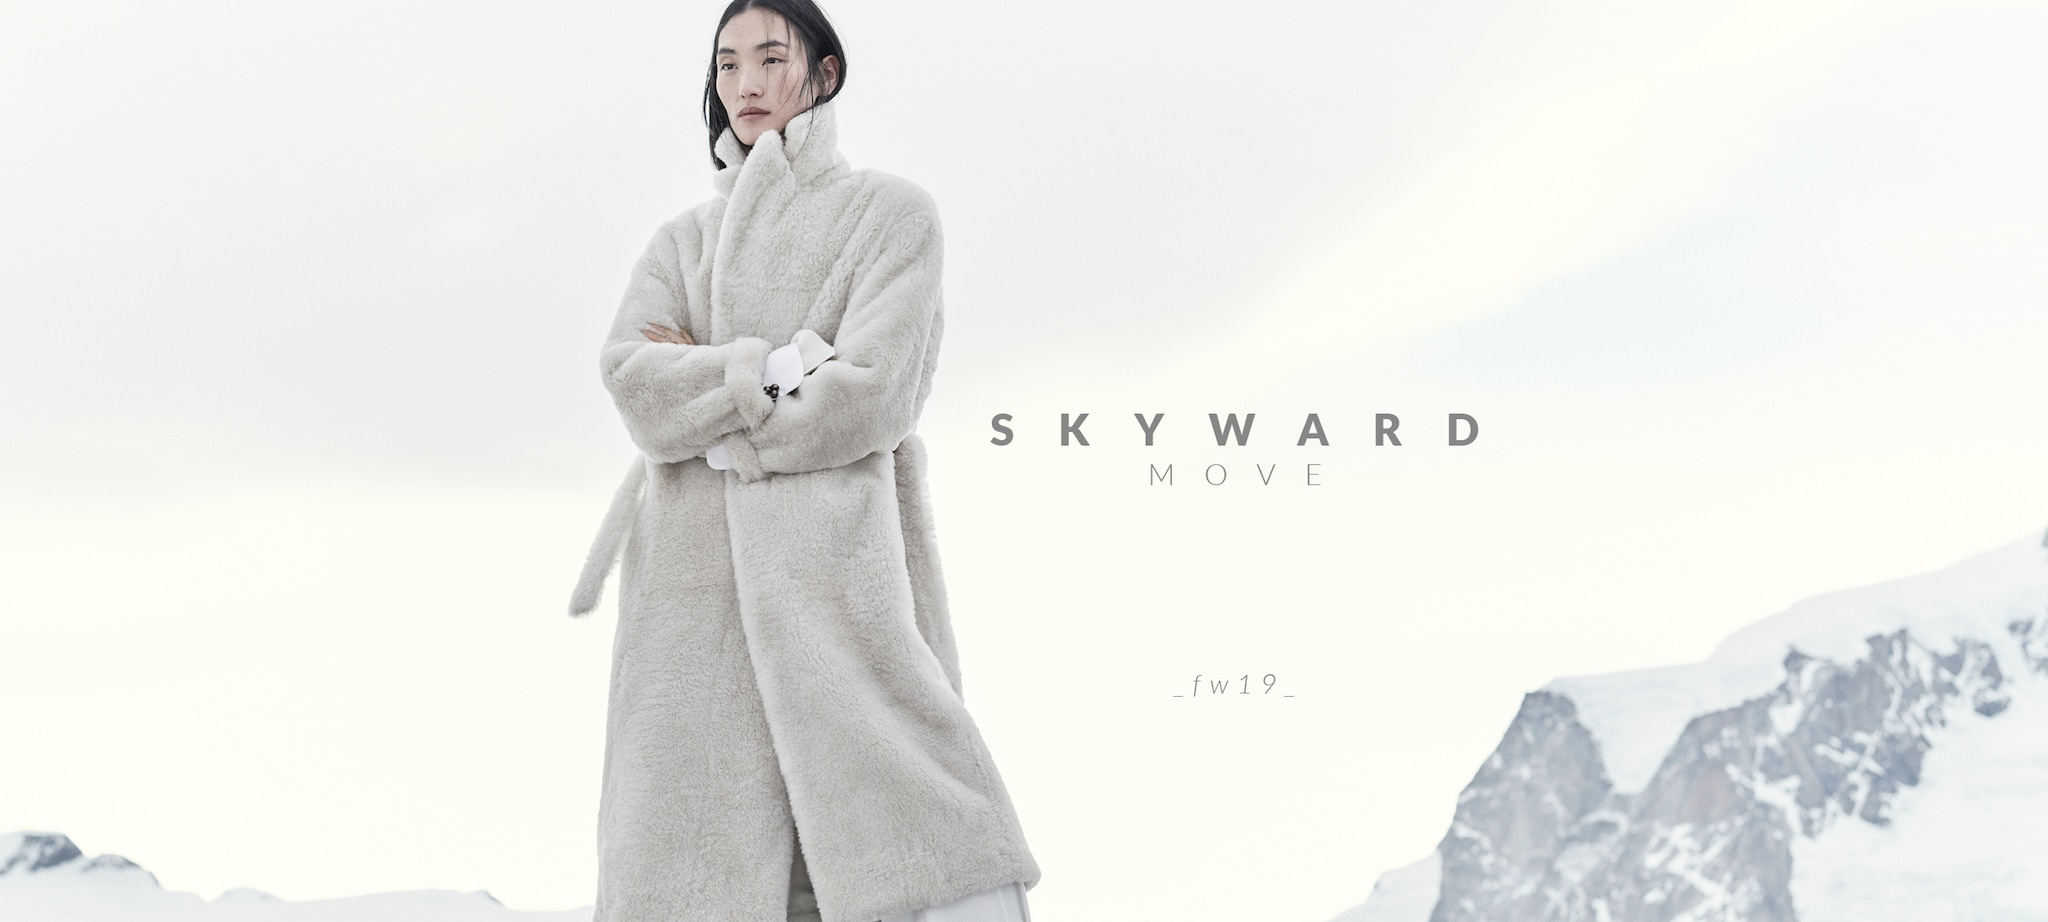 Woman FW 19 - Skyward Move